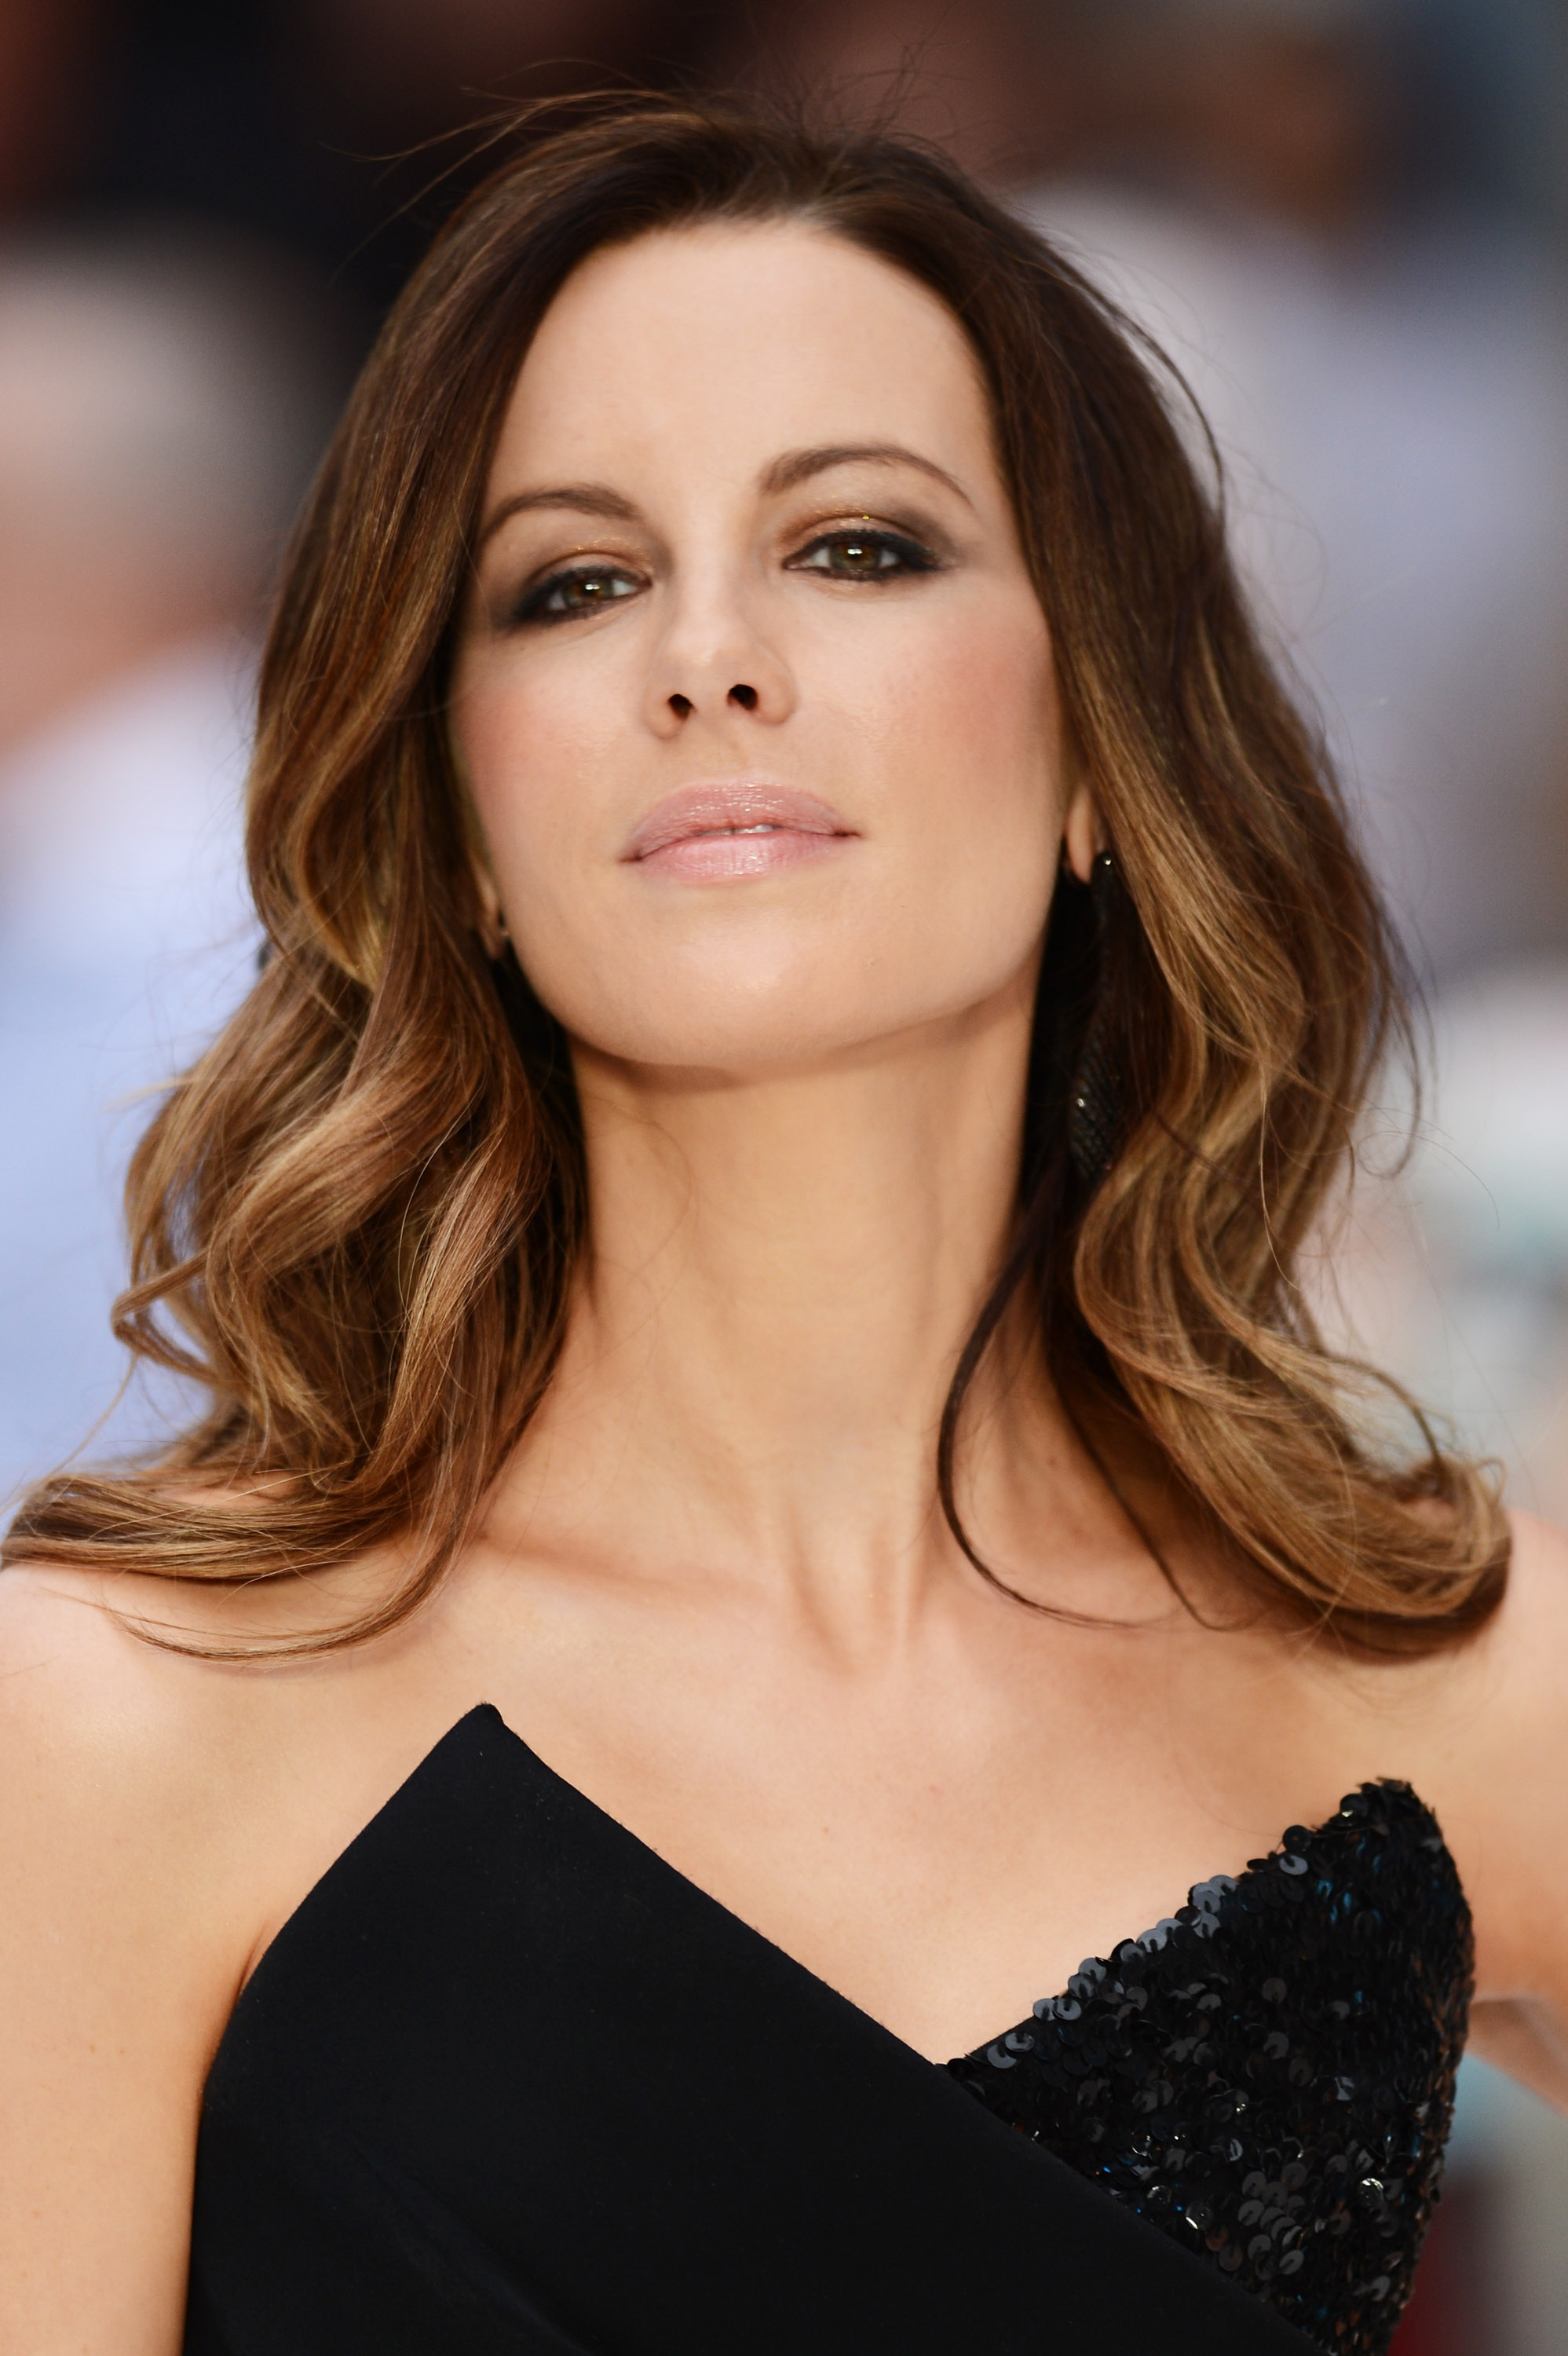 kate beckinsale - photo #14